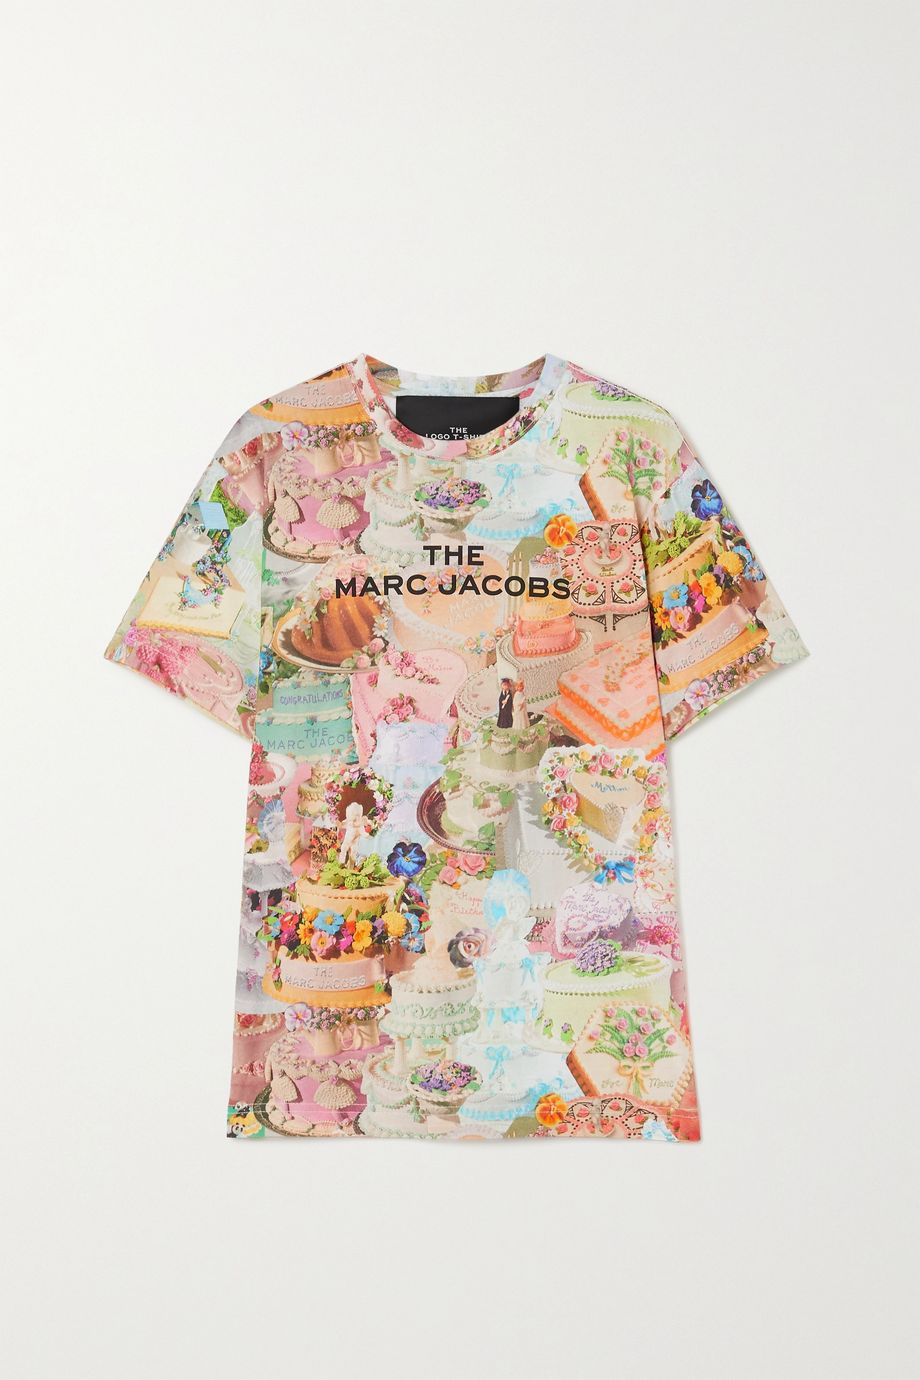 THE Marc Jacobs Printed cotton-jersey T-shirt